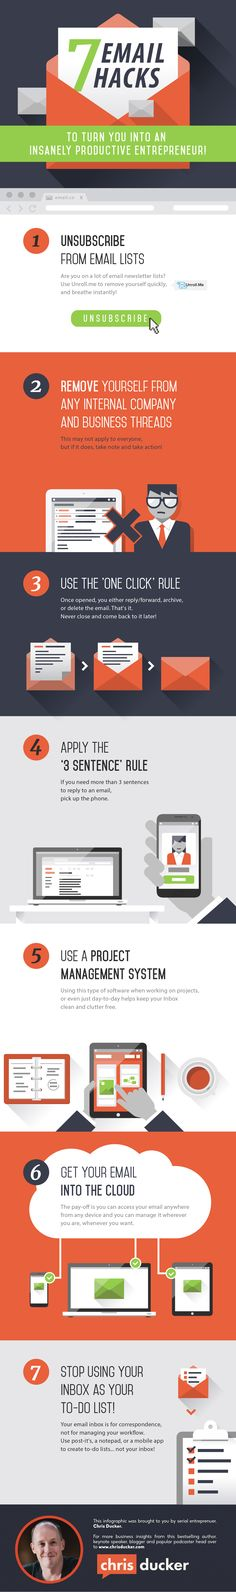 email-hacks-infographic